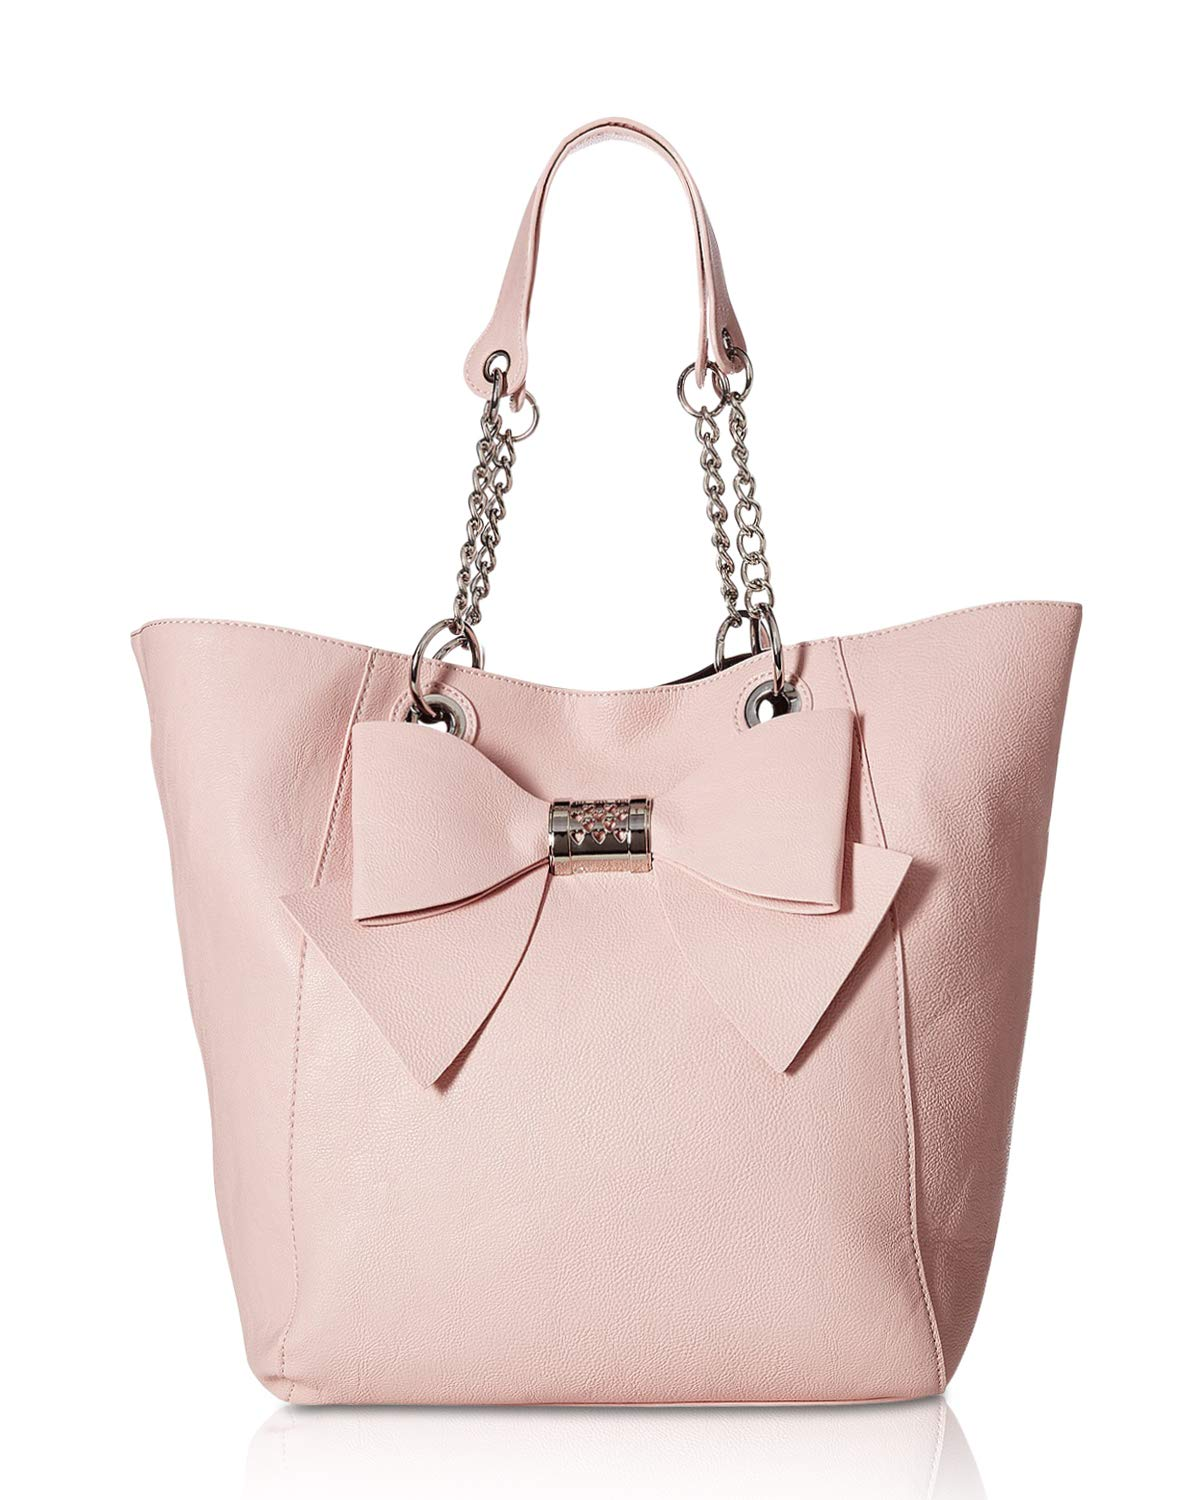 Betsey Johnson Women's Bag in Bag Bow Tote Blush One Size